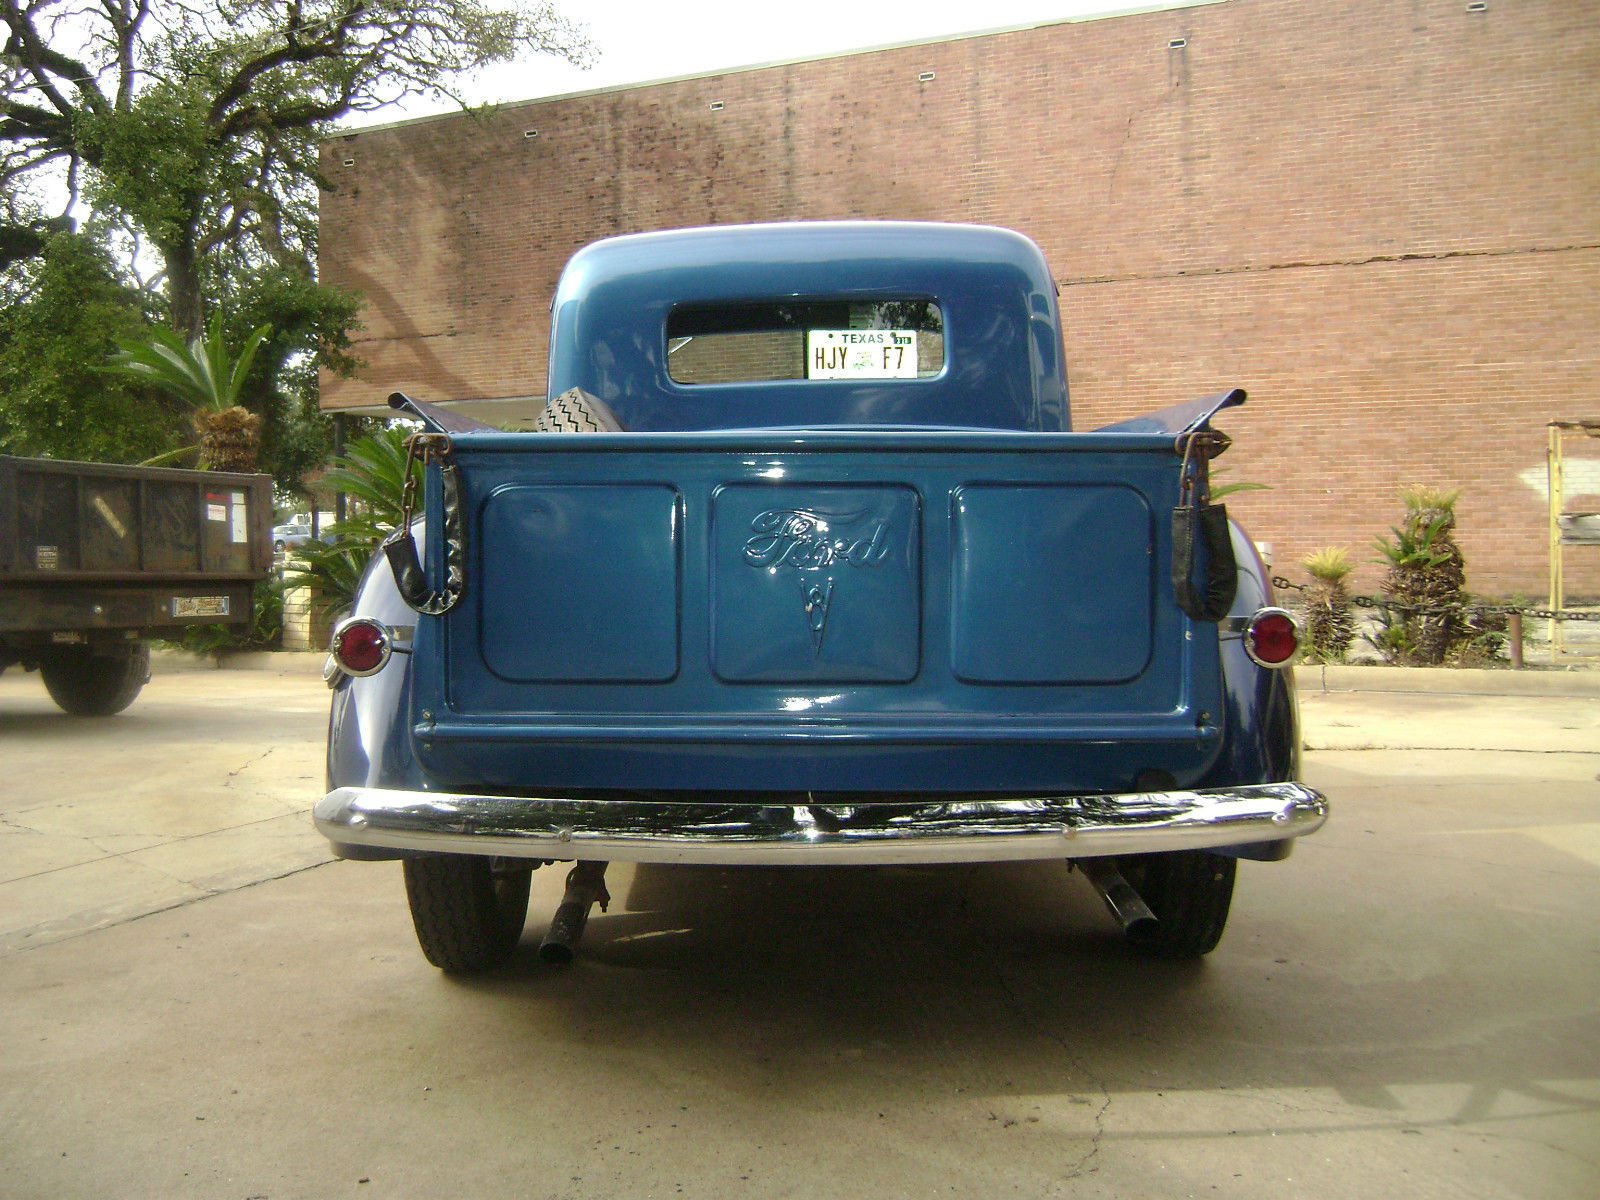 1938 ford pickup truck pickups texas states united baytown